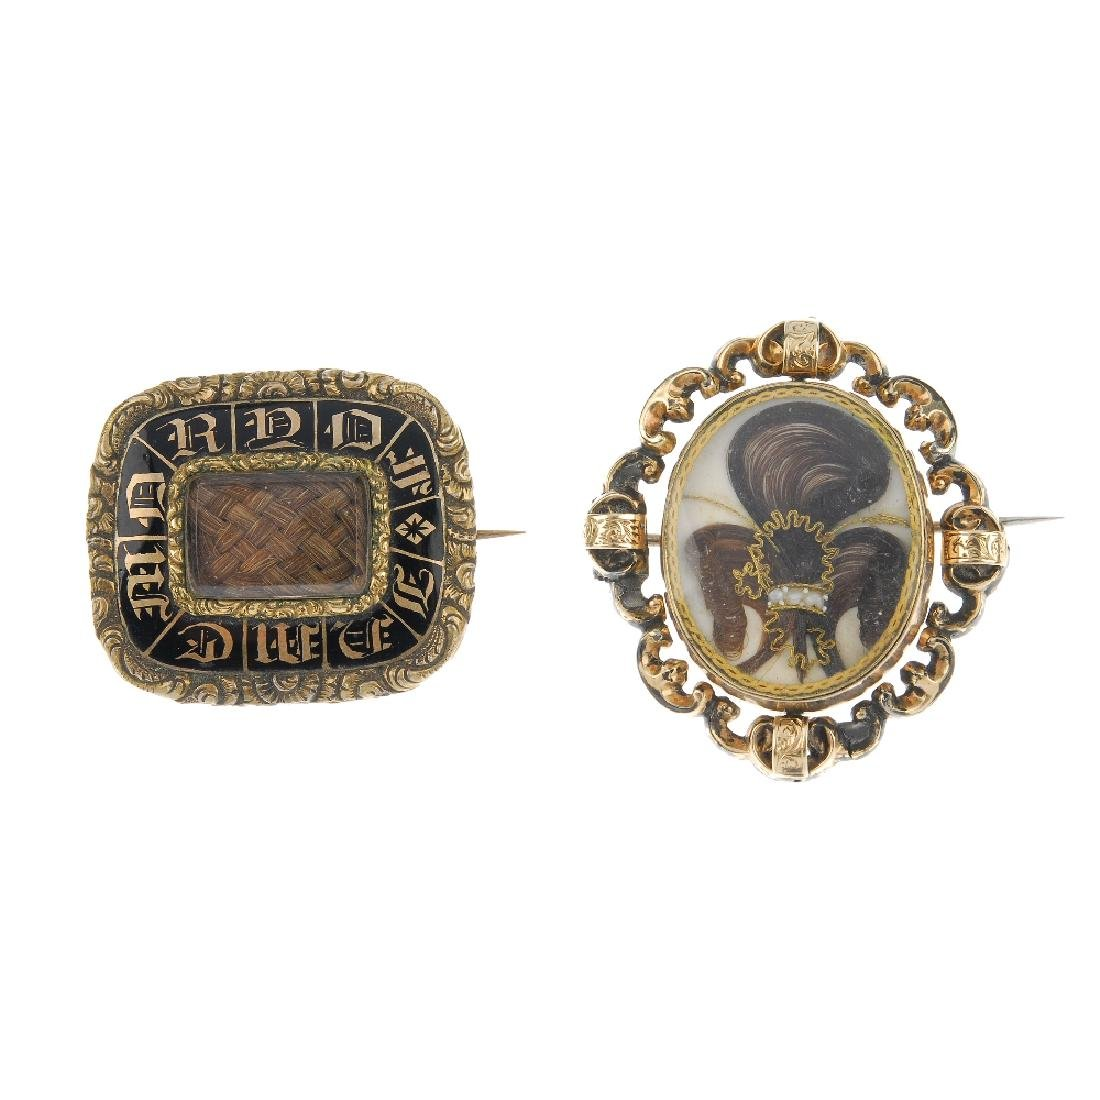 Two late Victorian memorial brooches. The first a